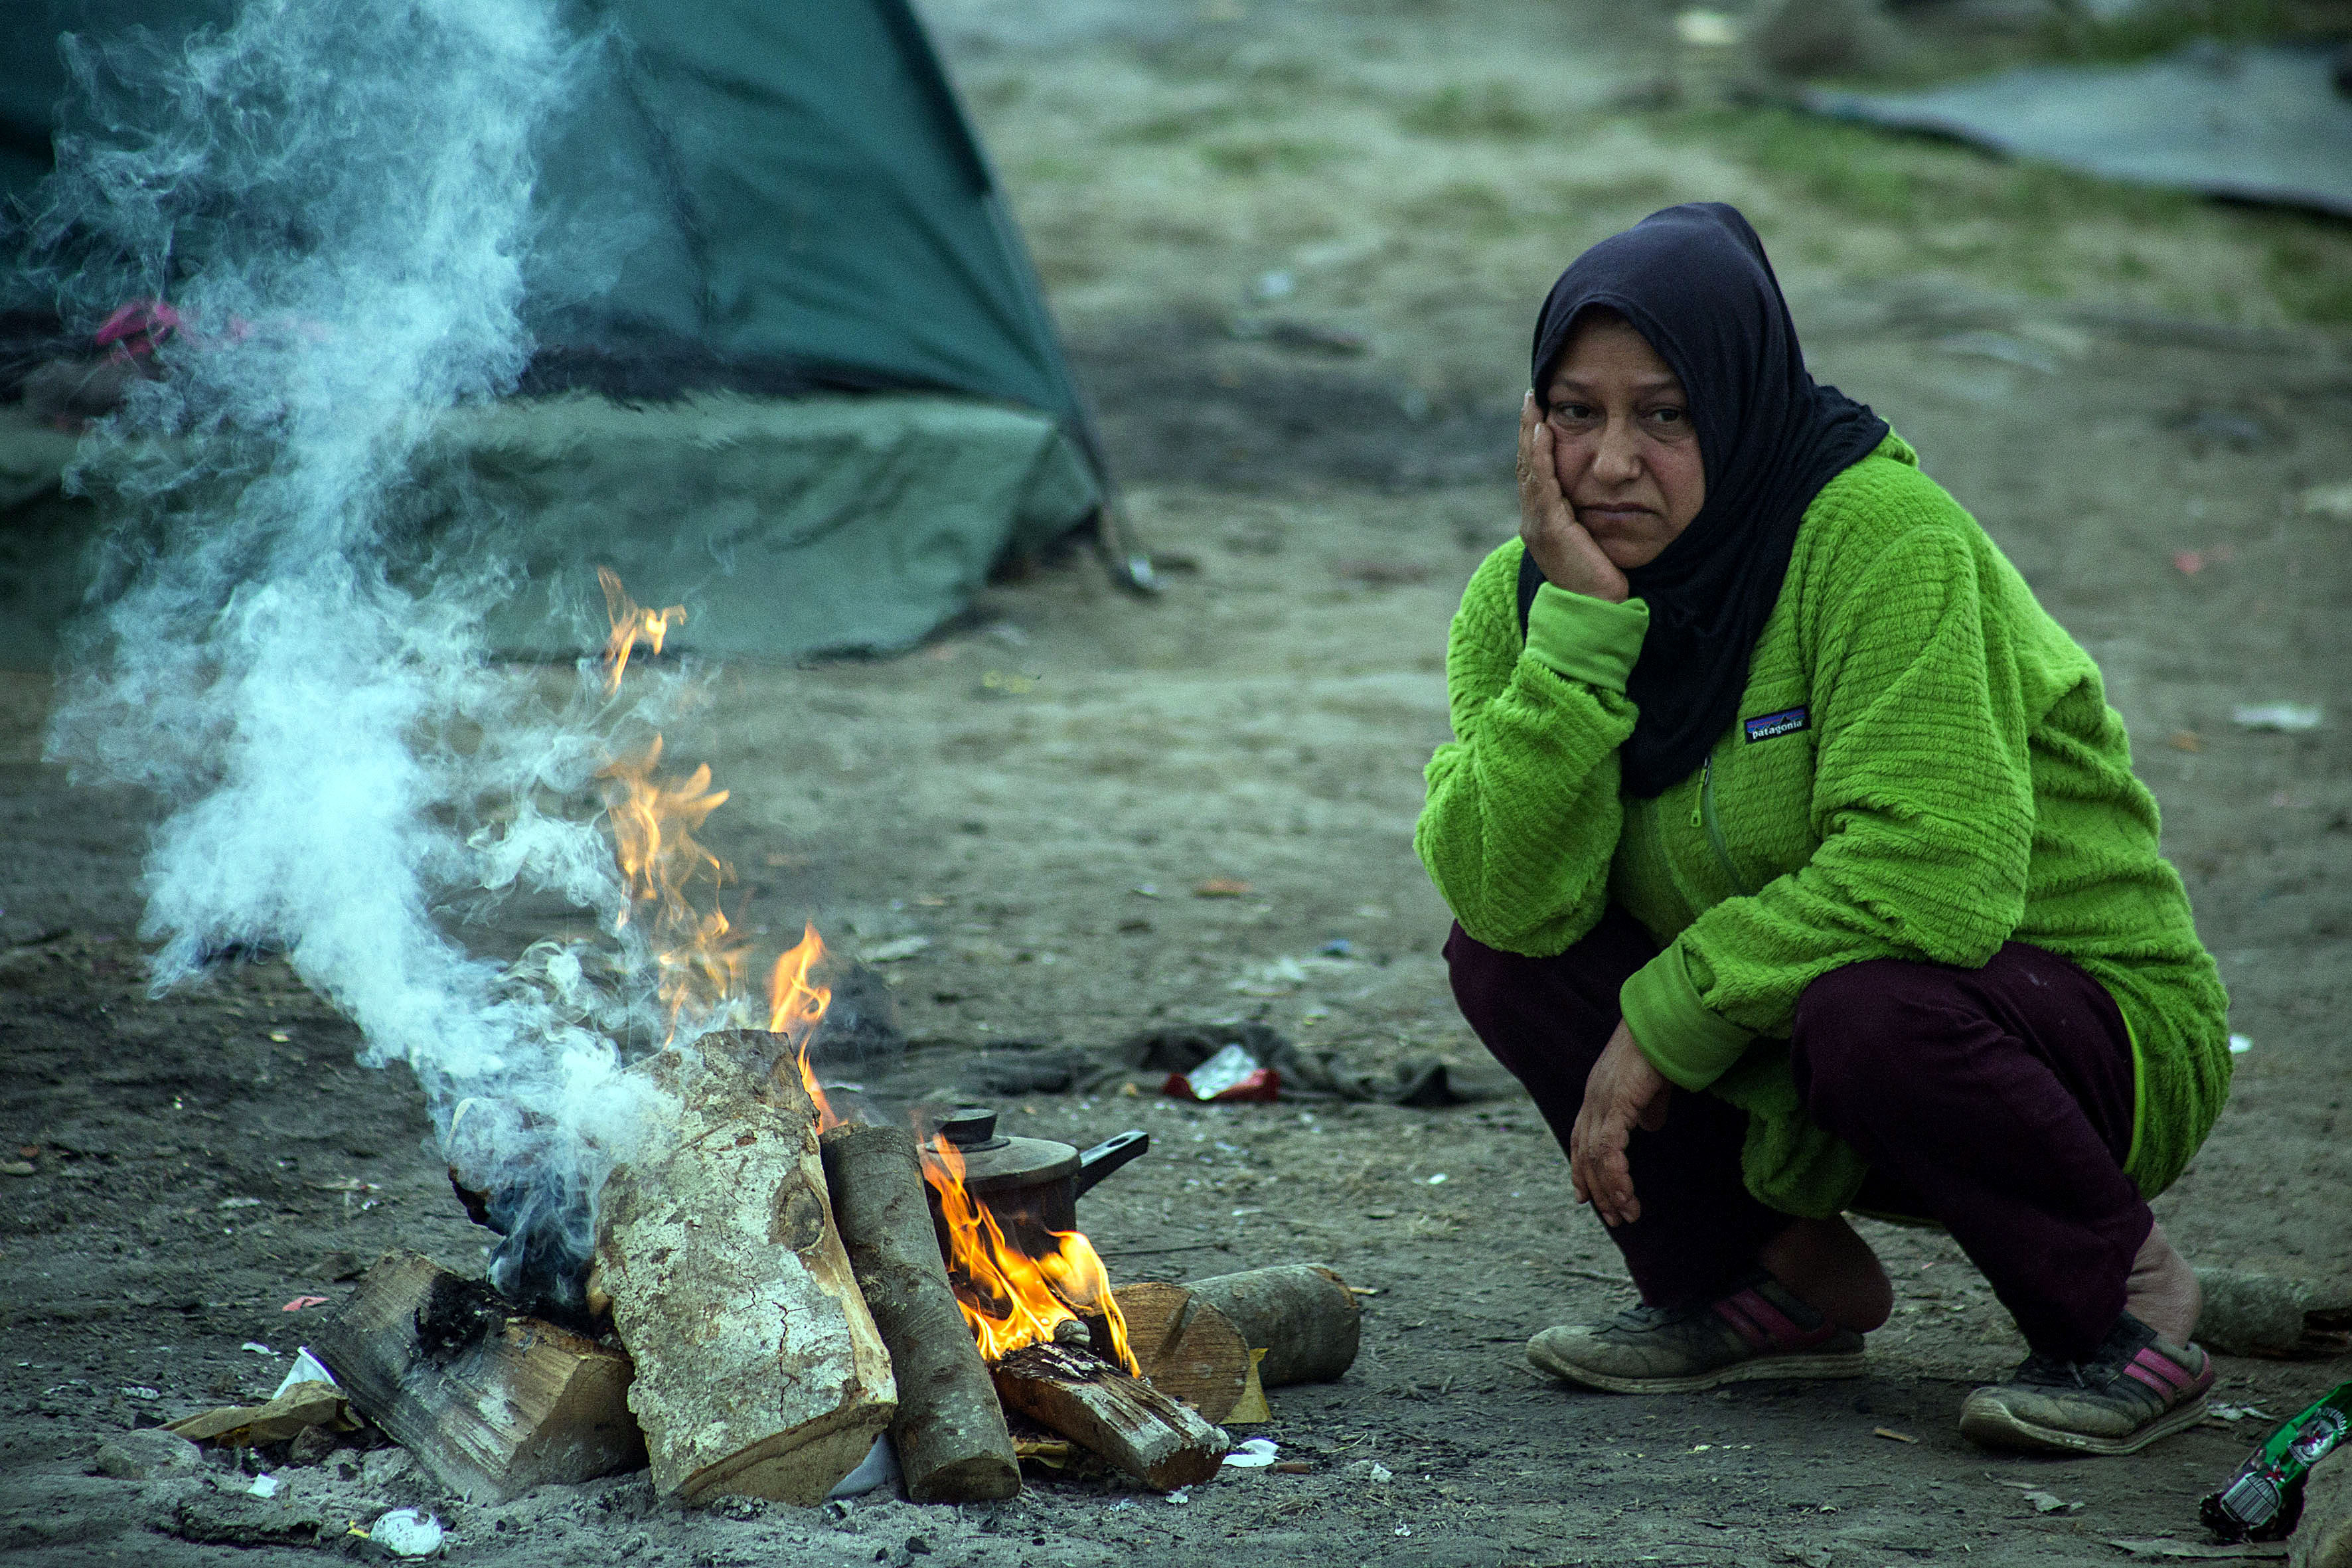 DIRE CONDITIONS. A refugee from Syria sits outside her tent in the makeshift camp in Idomeni, Greece, on March 23, 2016. File photo by Nikos Arvanitidis/EPA